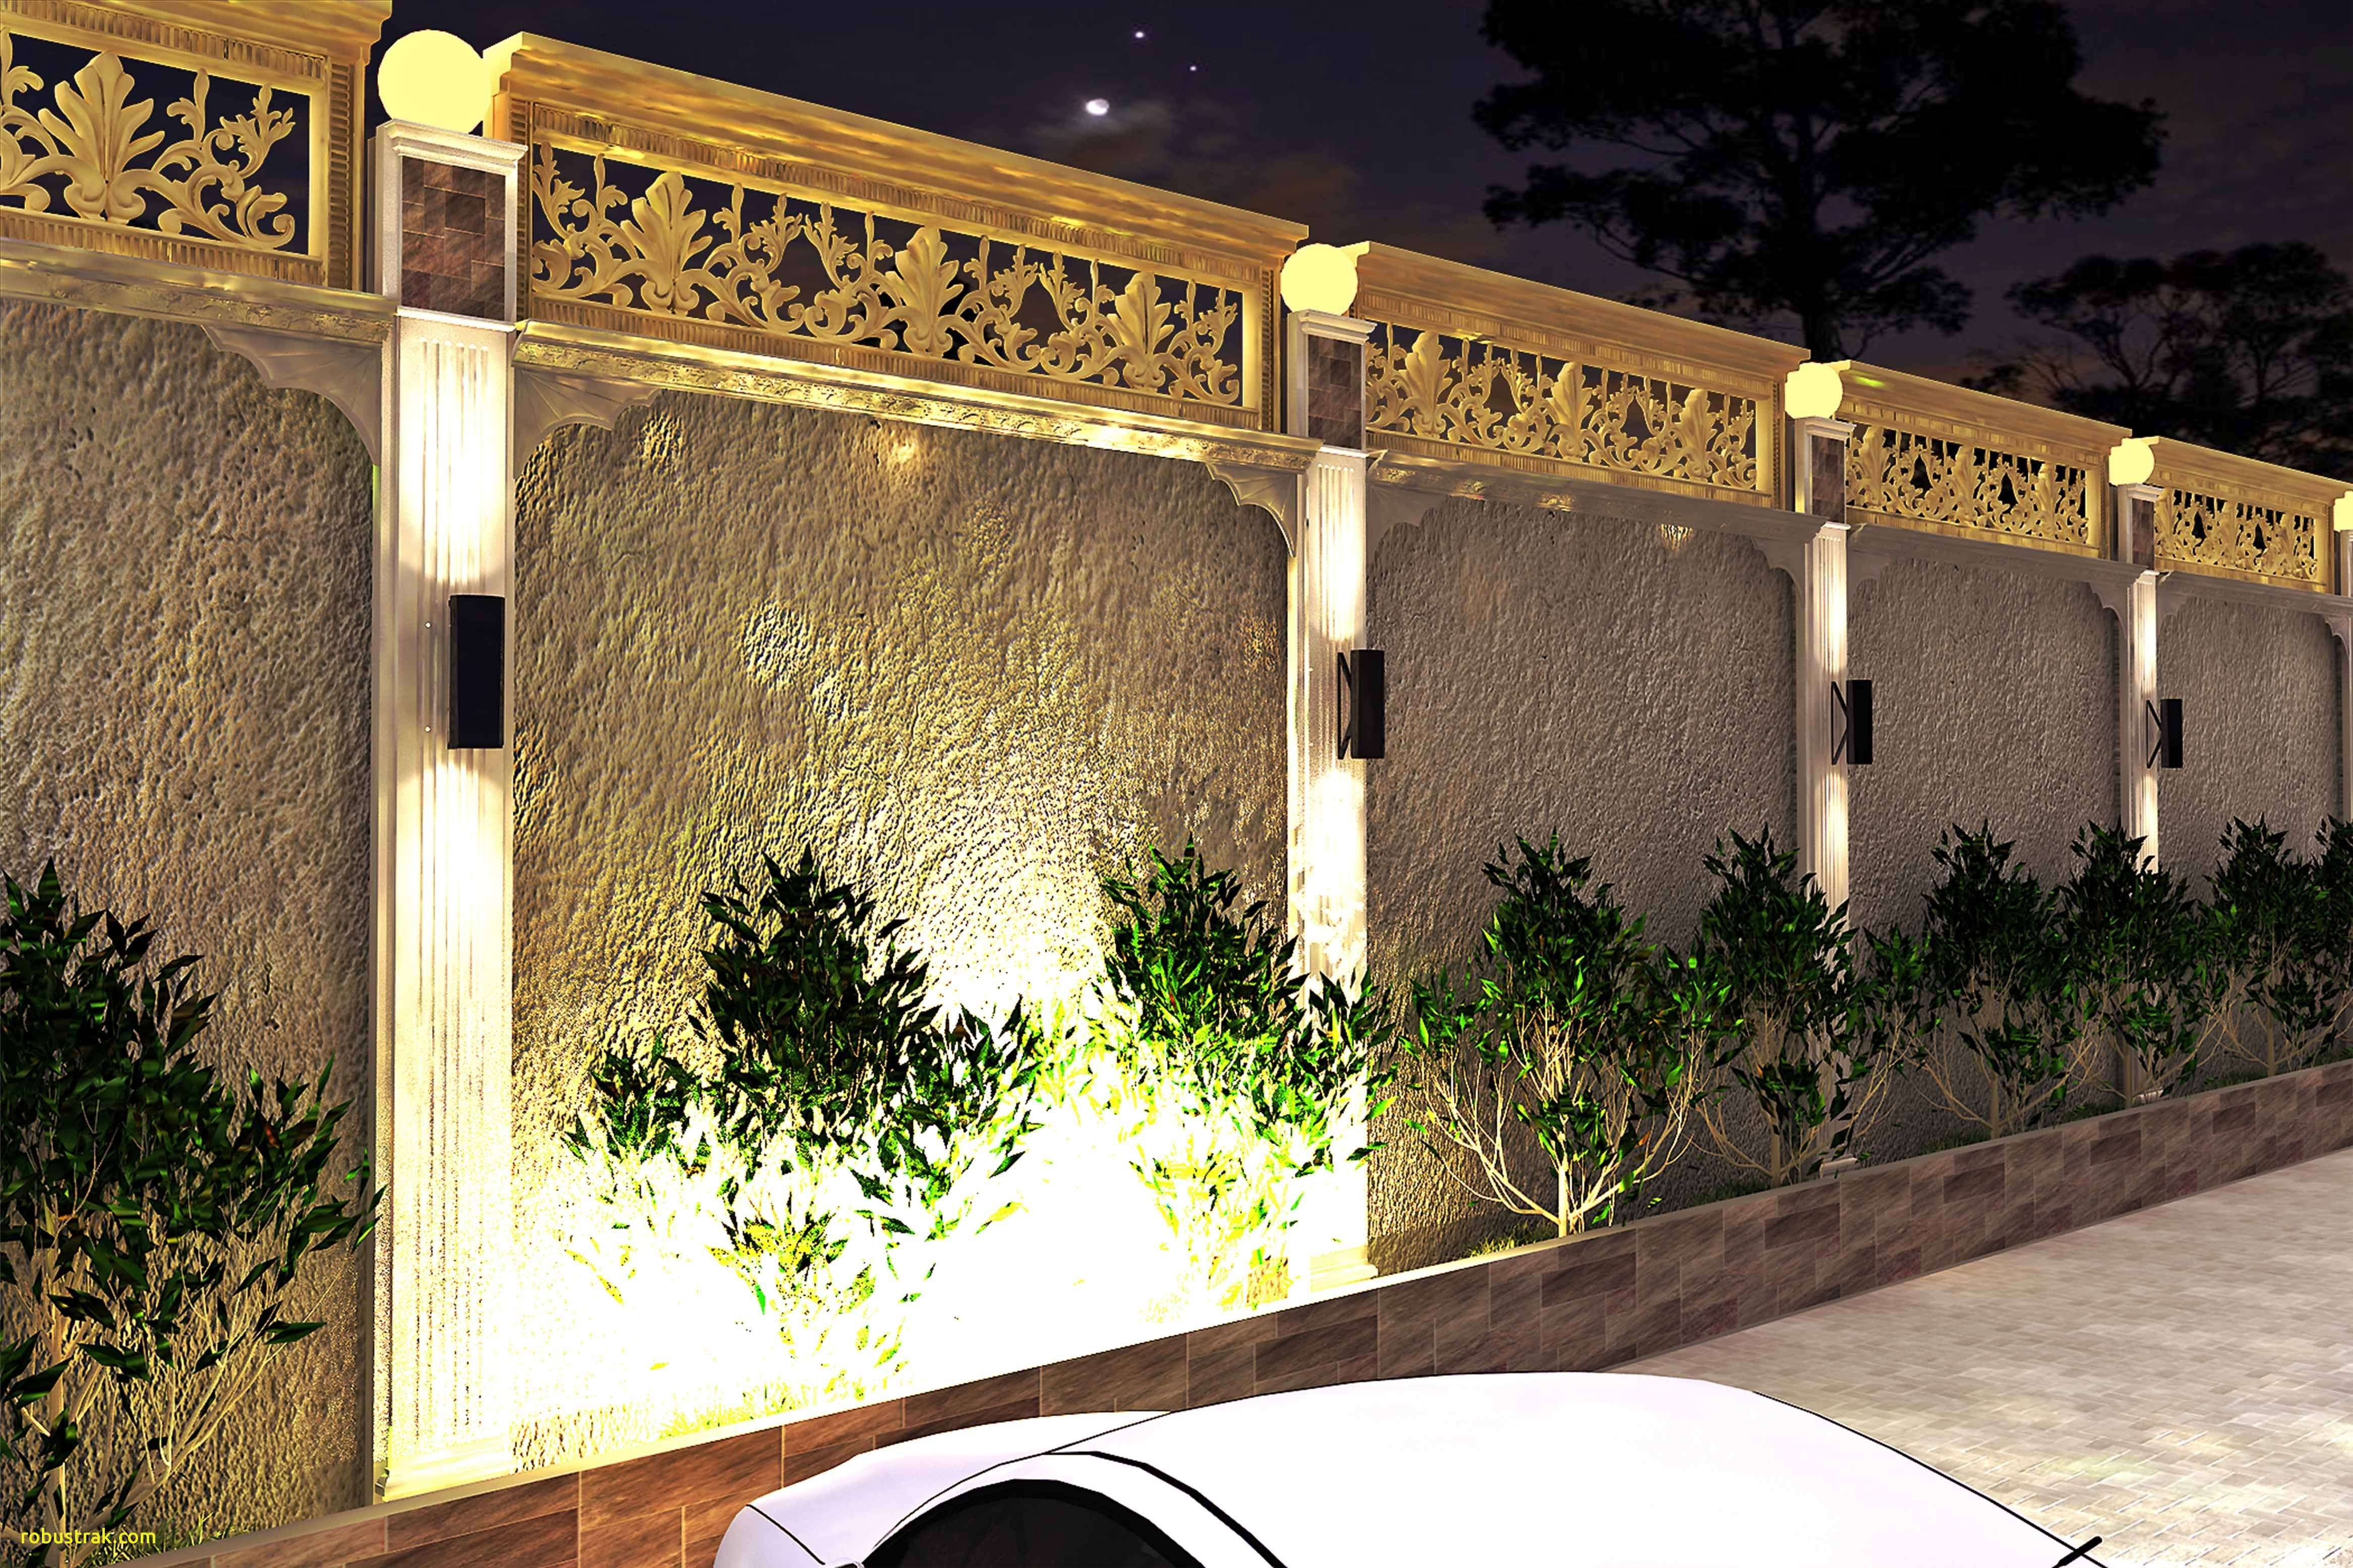 House Compound Gate Gate Wall Design House Outside Design Compound Wall Design